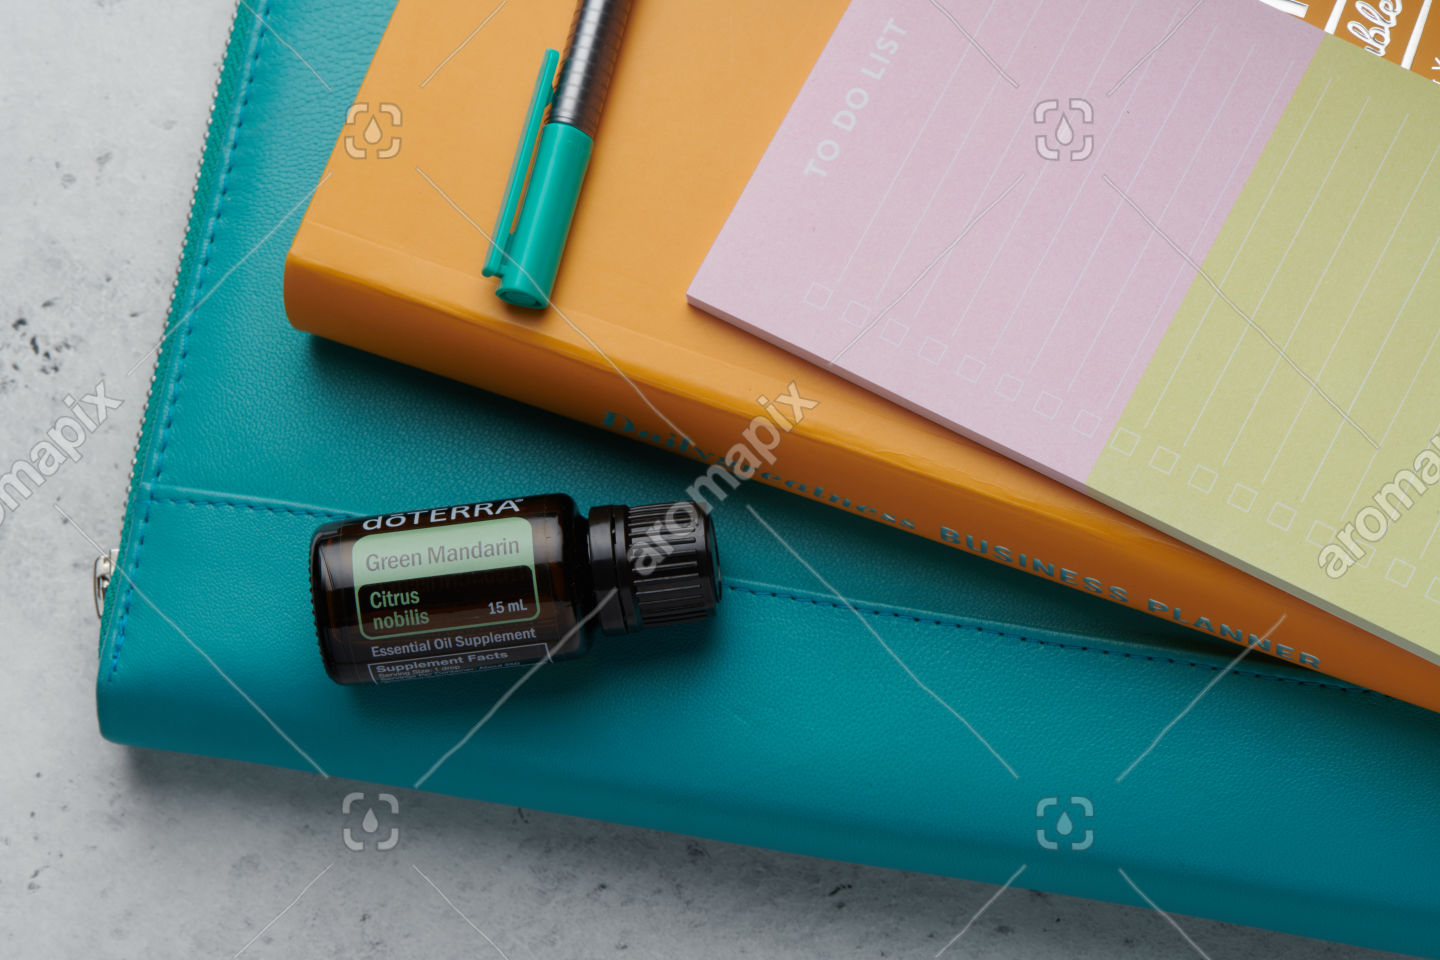 doTERRA Green Mandarin product with business tools